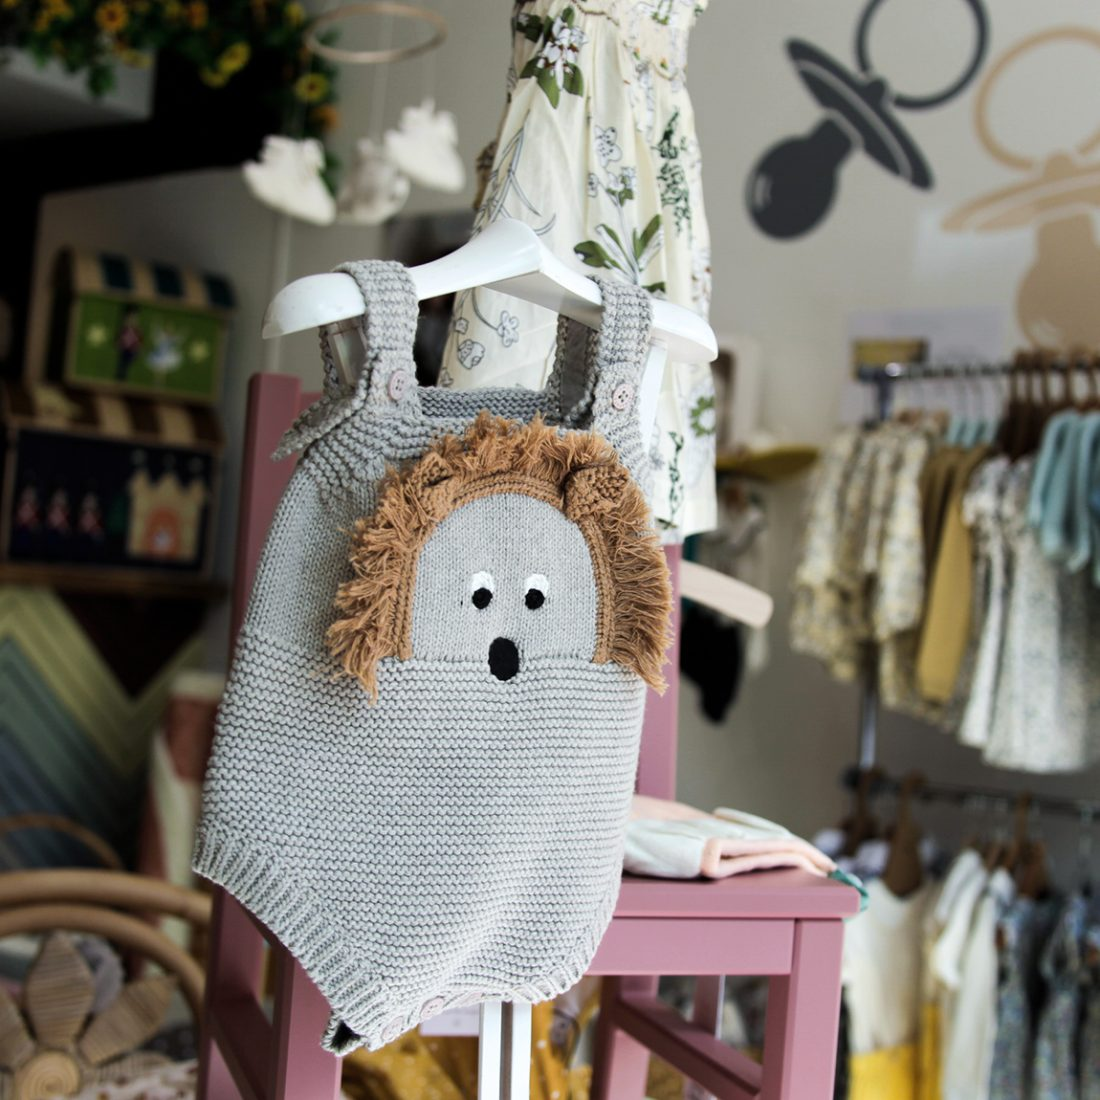 Interior of Nibbling shop in Chelsea - a cute child's romper with a hedgehog on and bright patterned children's clothing in the background